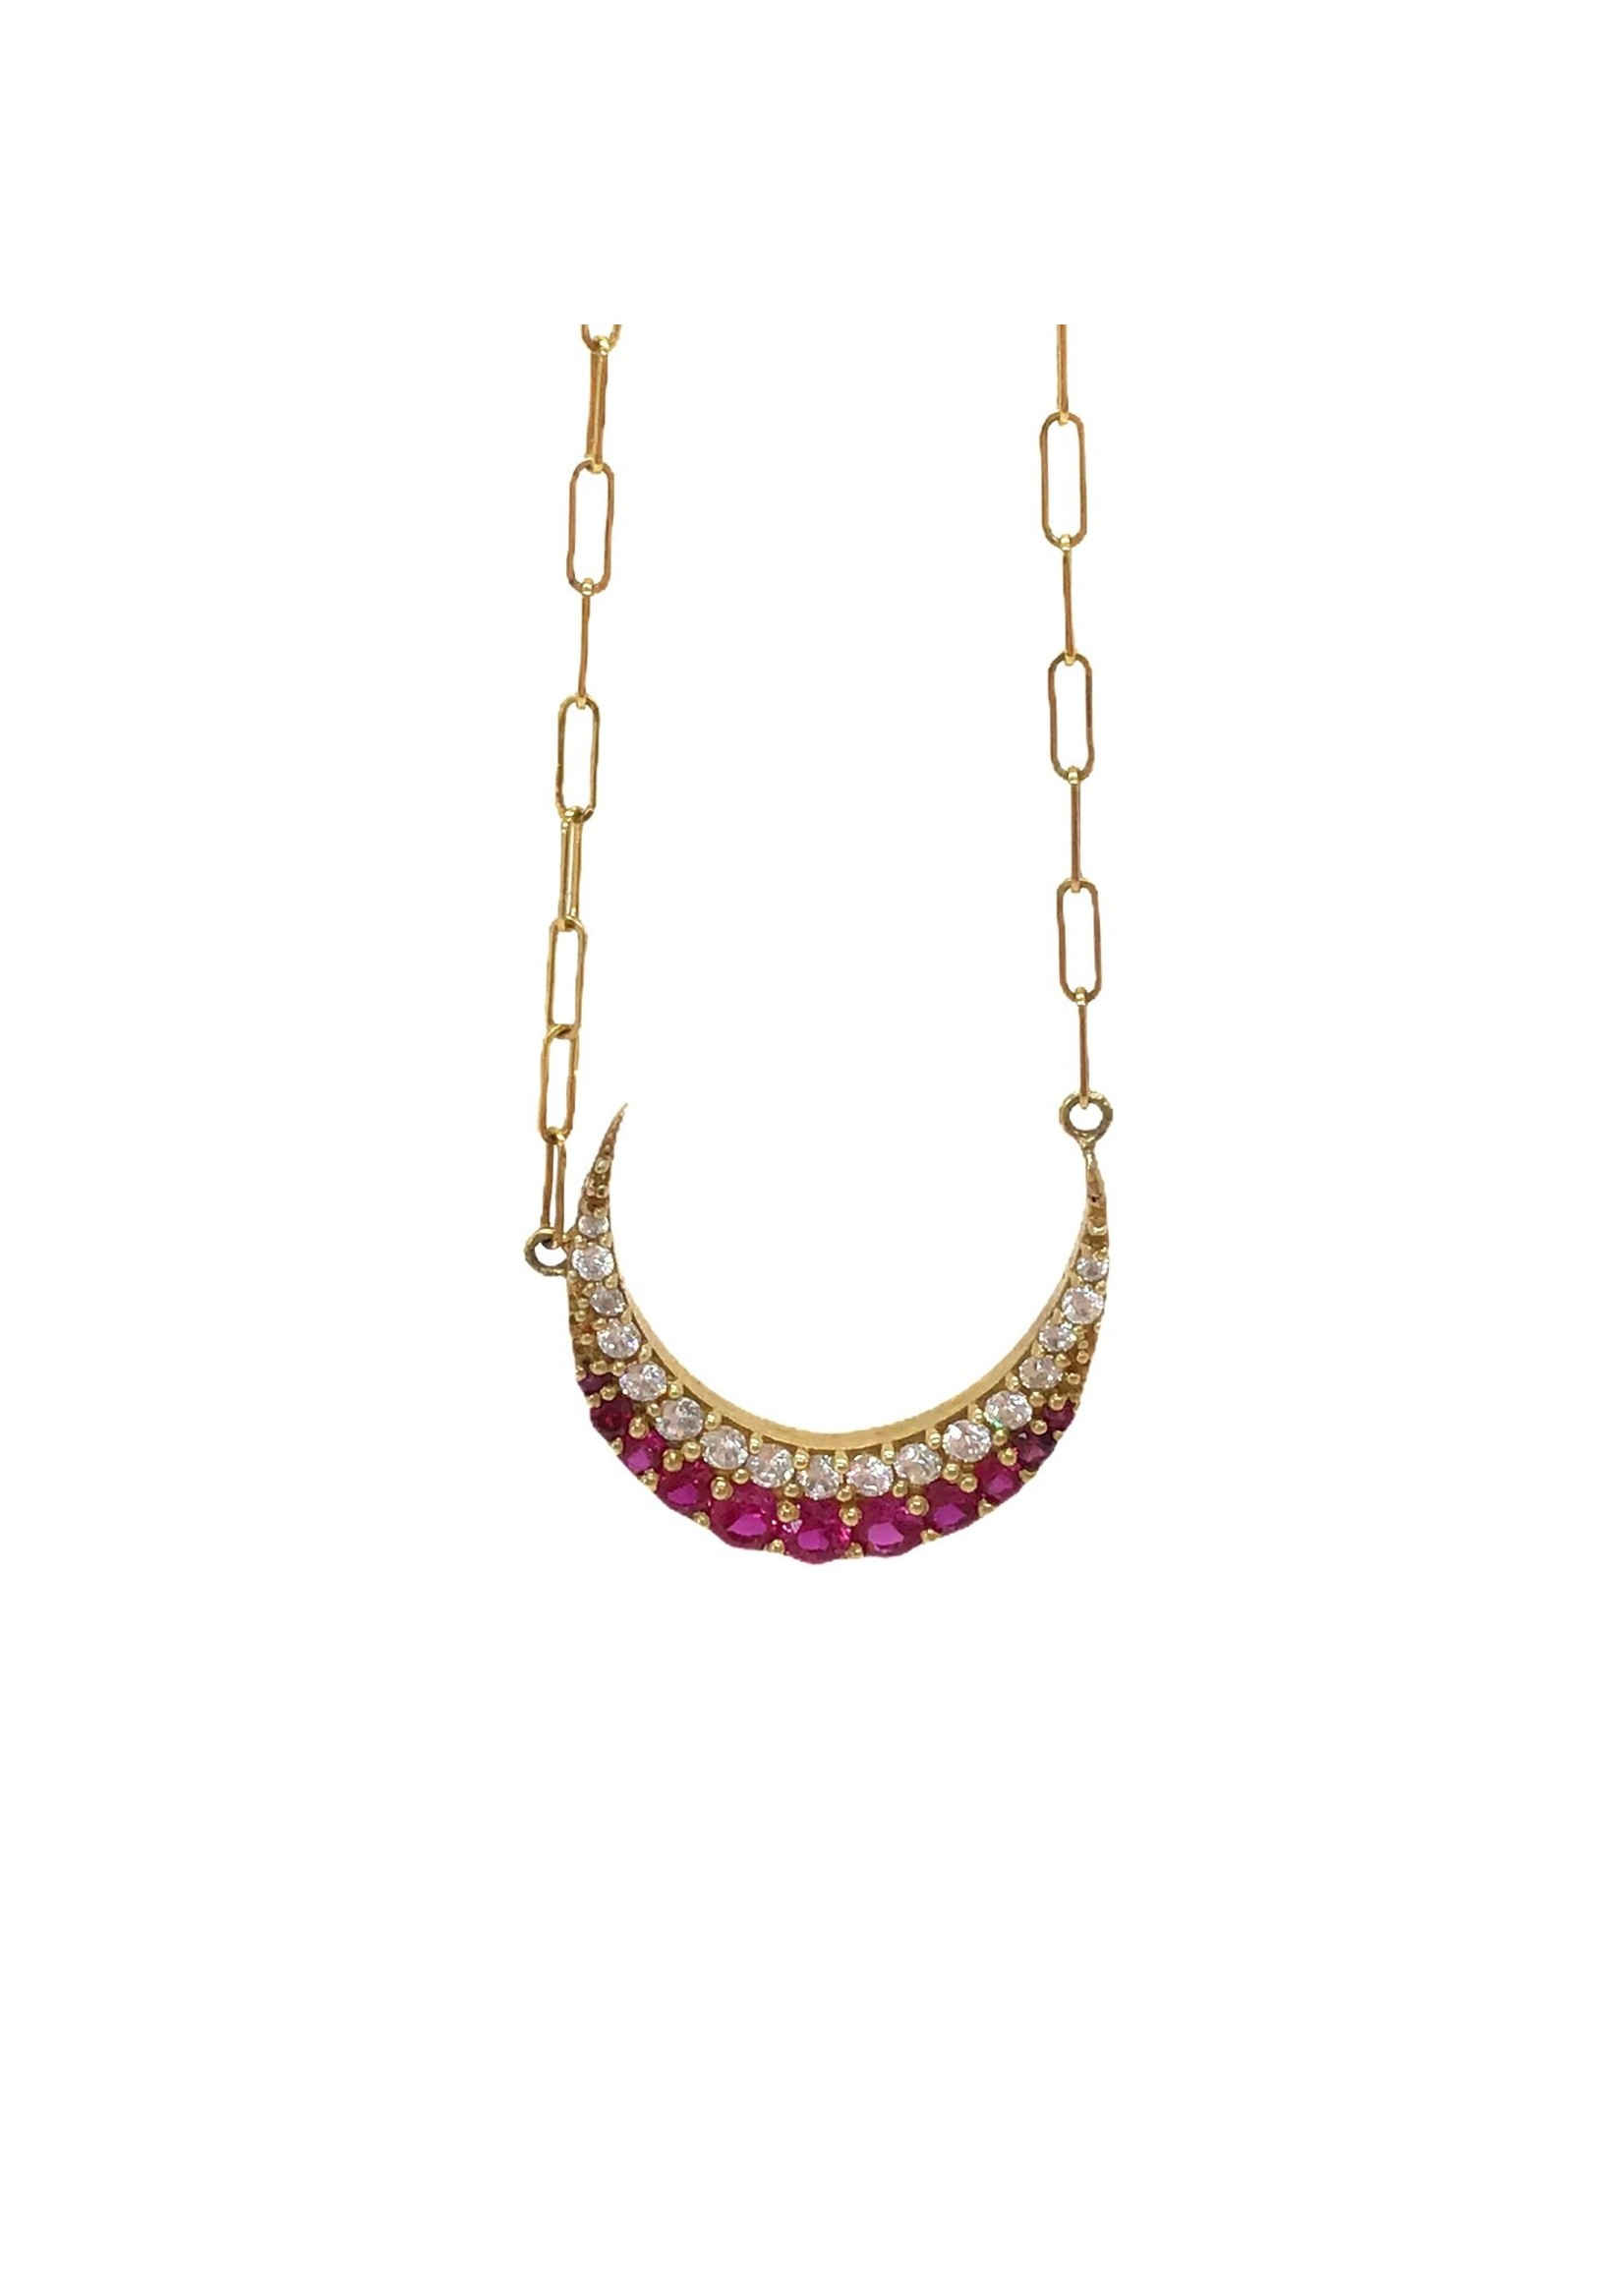 Jill Alberts Vintage Inspired Ruby Crescent